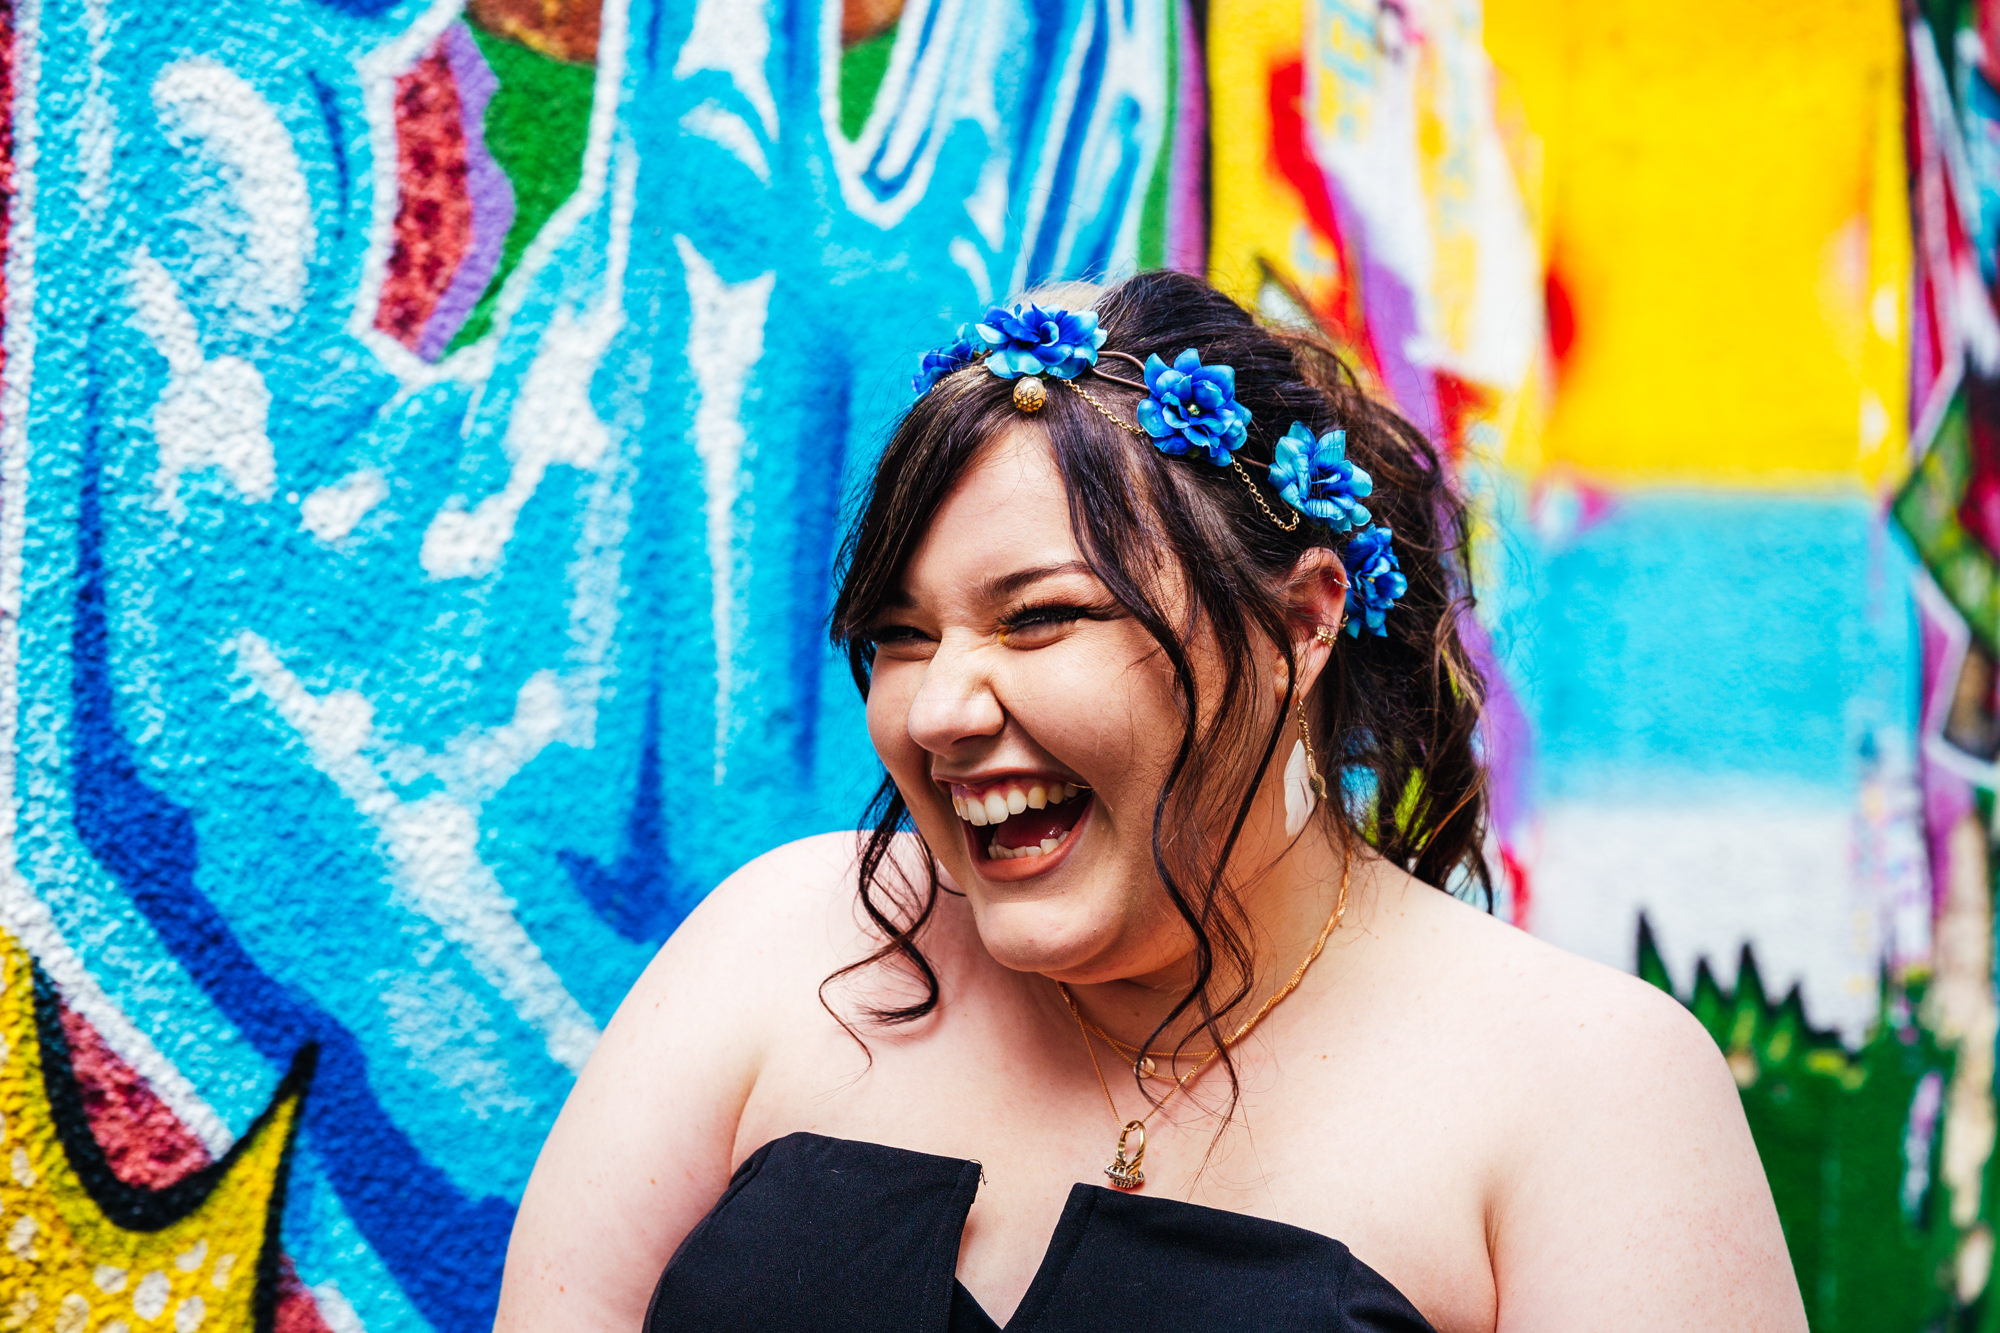 Small Wedding - Bride smiling widely on her wedding day in front of colourful wall